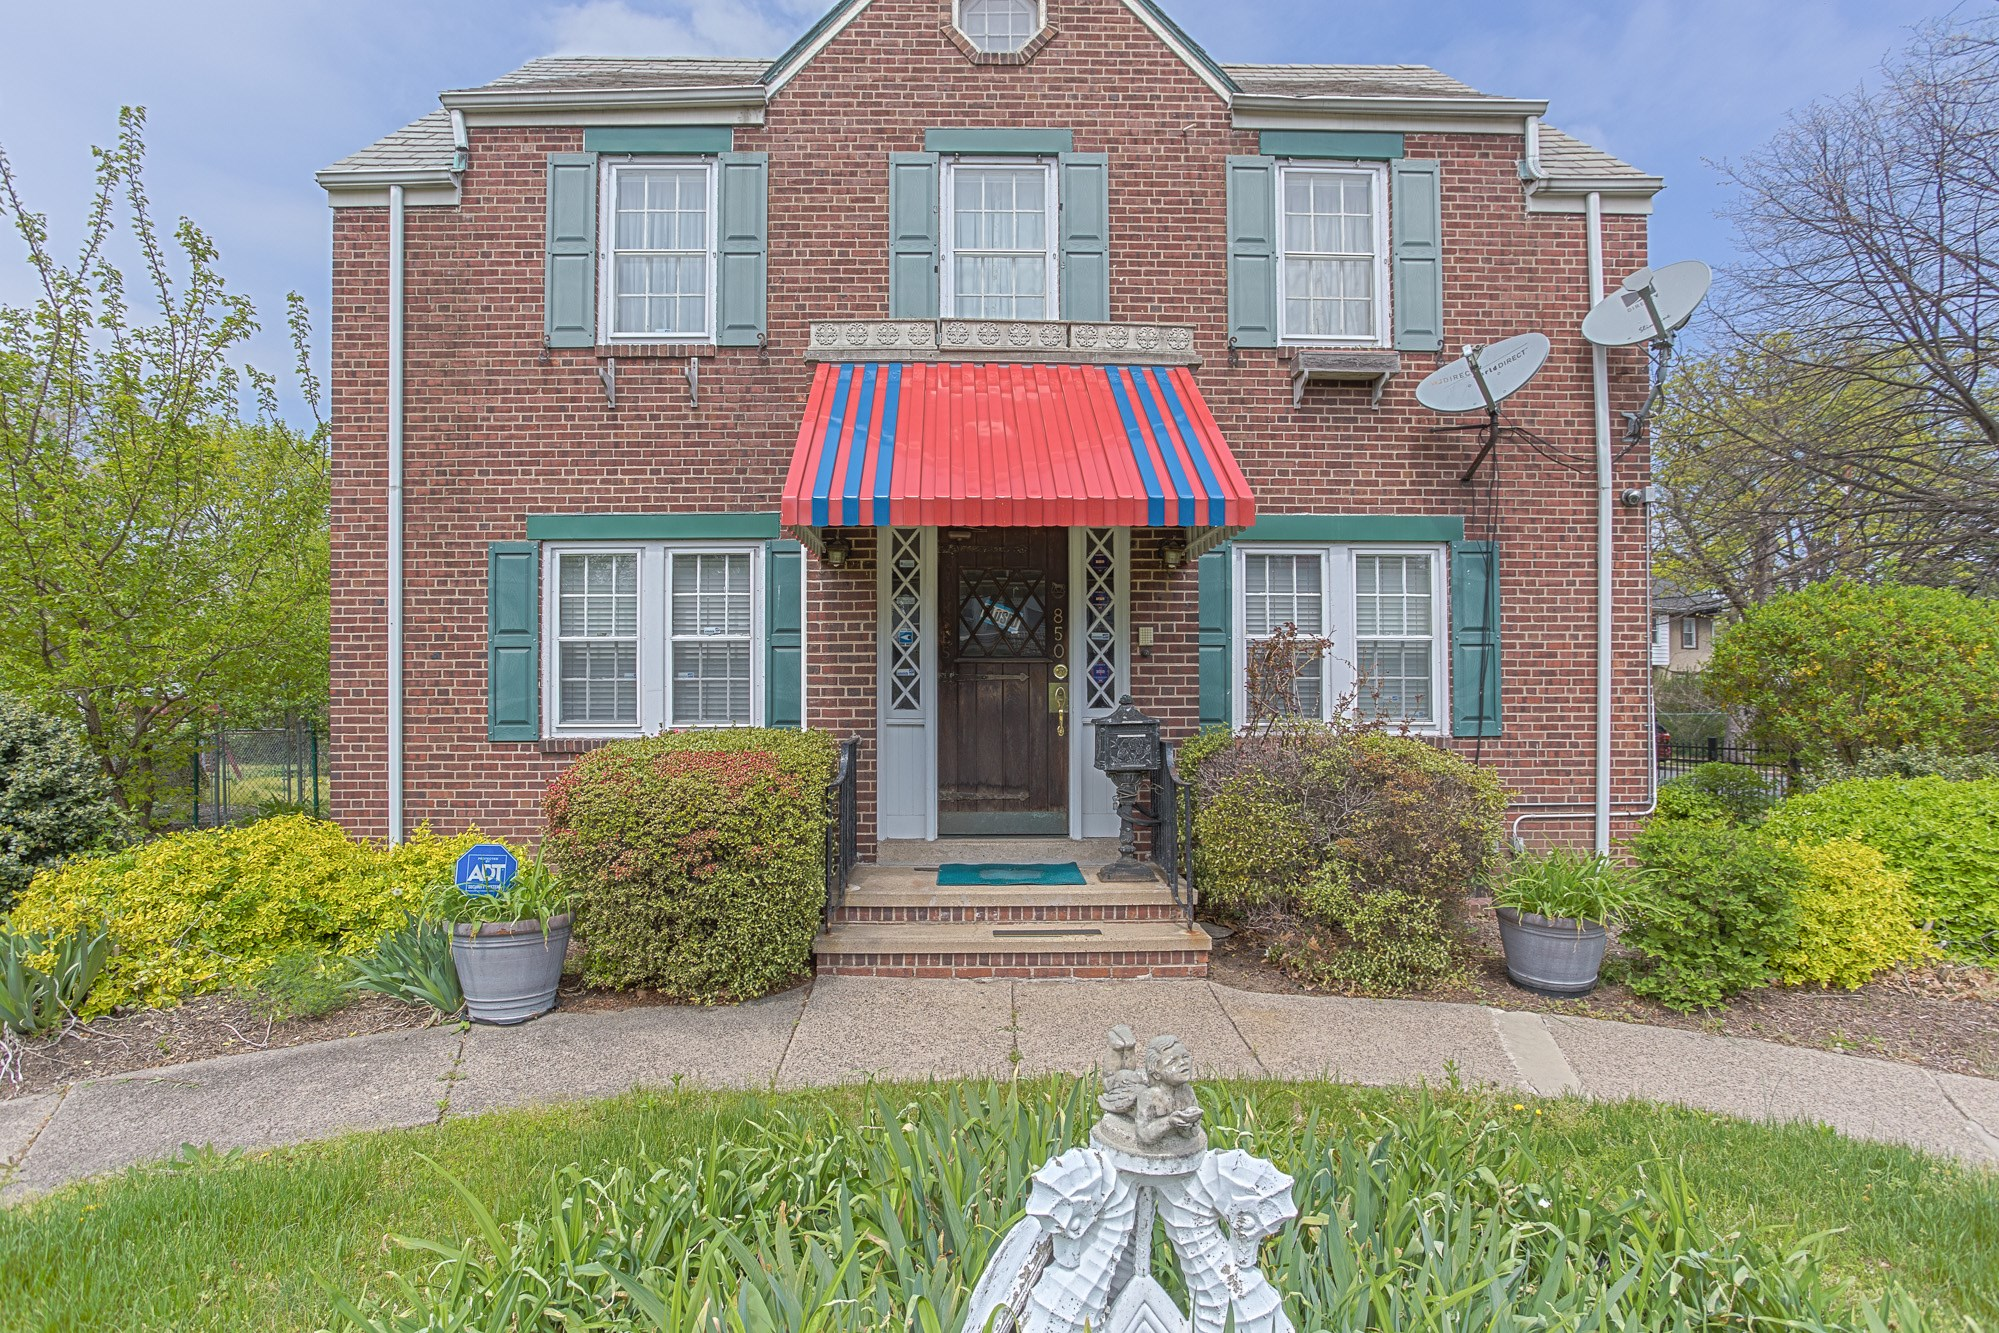 Commercial, Office, Professional For Rent  Durham Woods Apartments Edison Nj